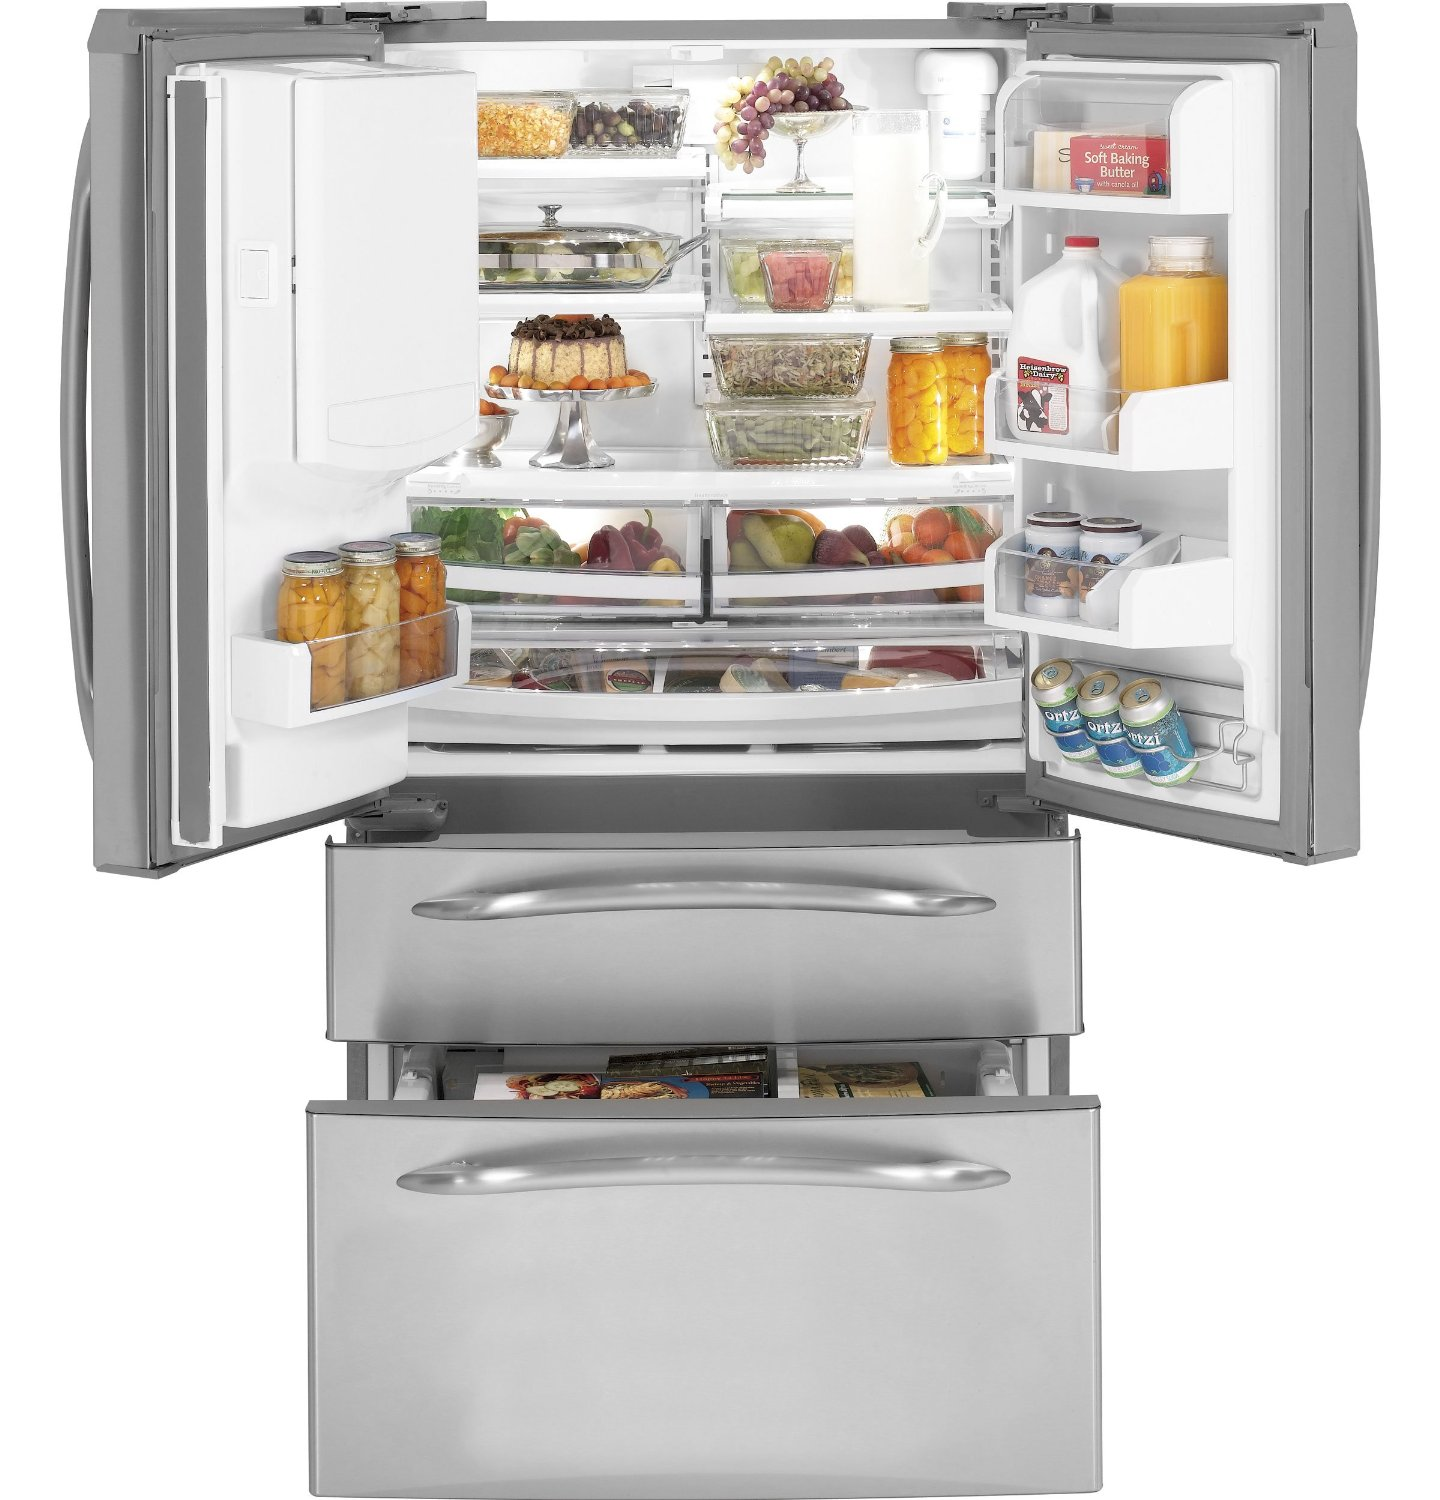 Depth Refrigerator (Stainless Steel) (Image 6 of 10)